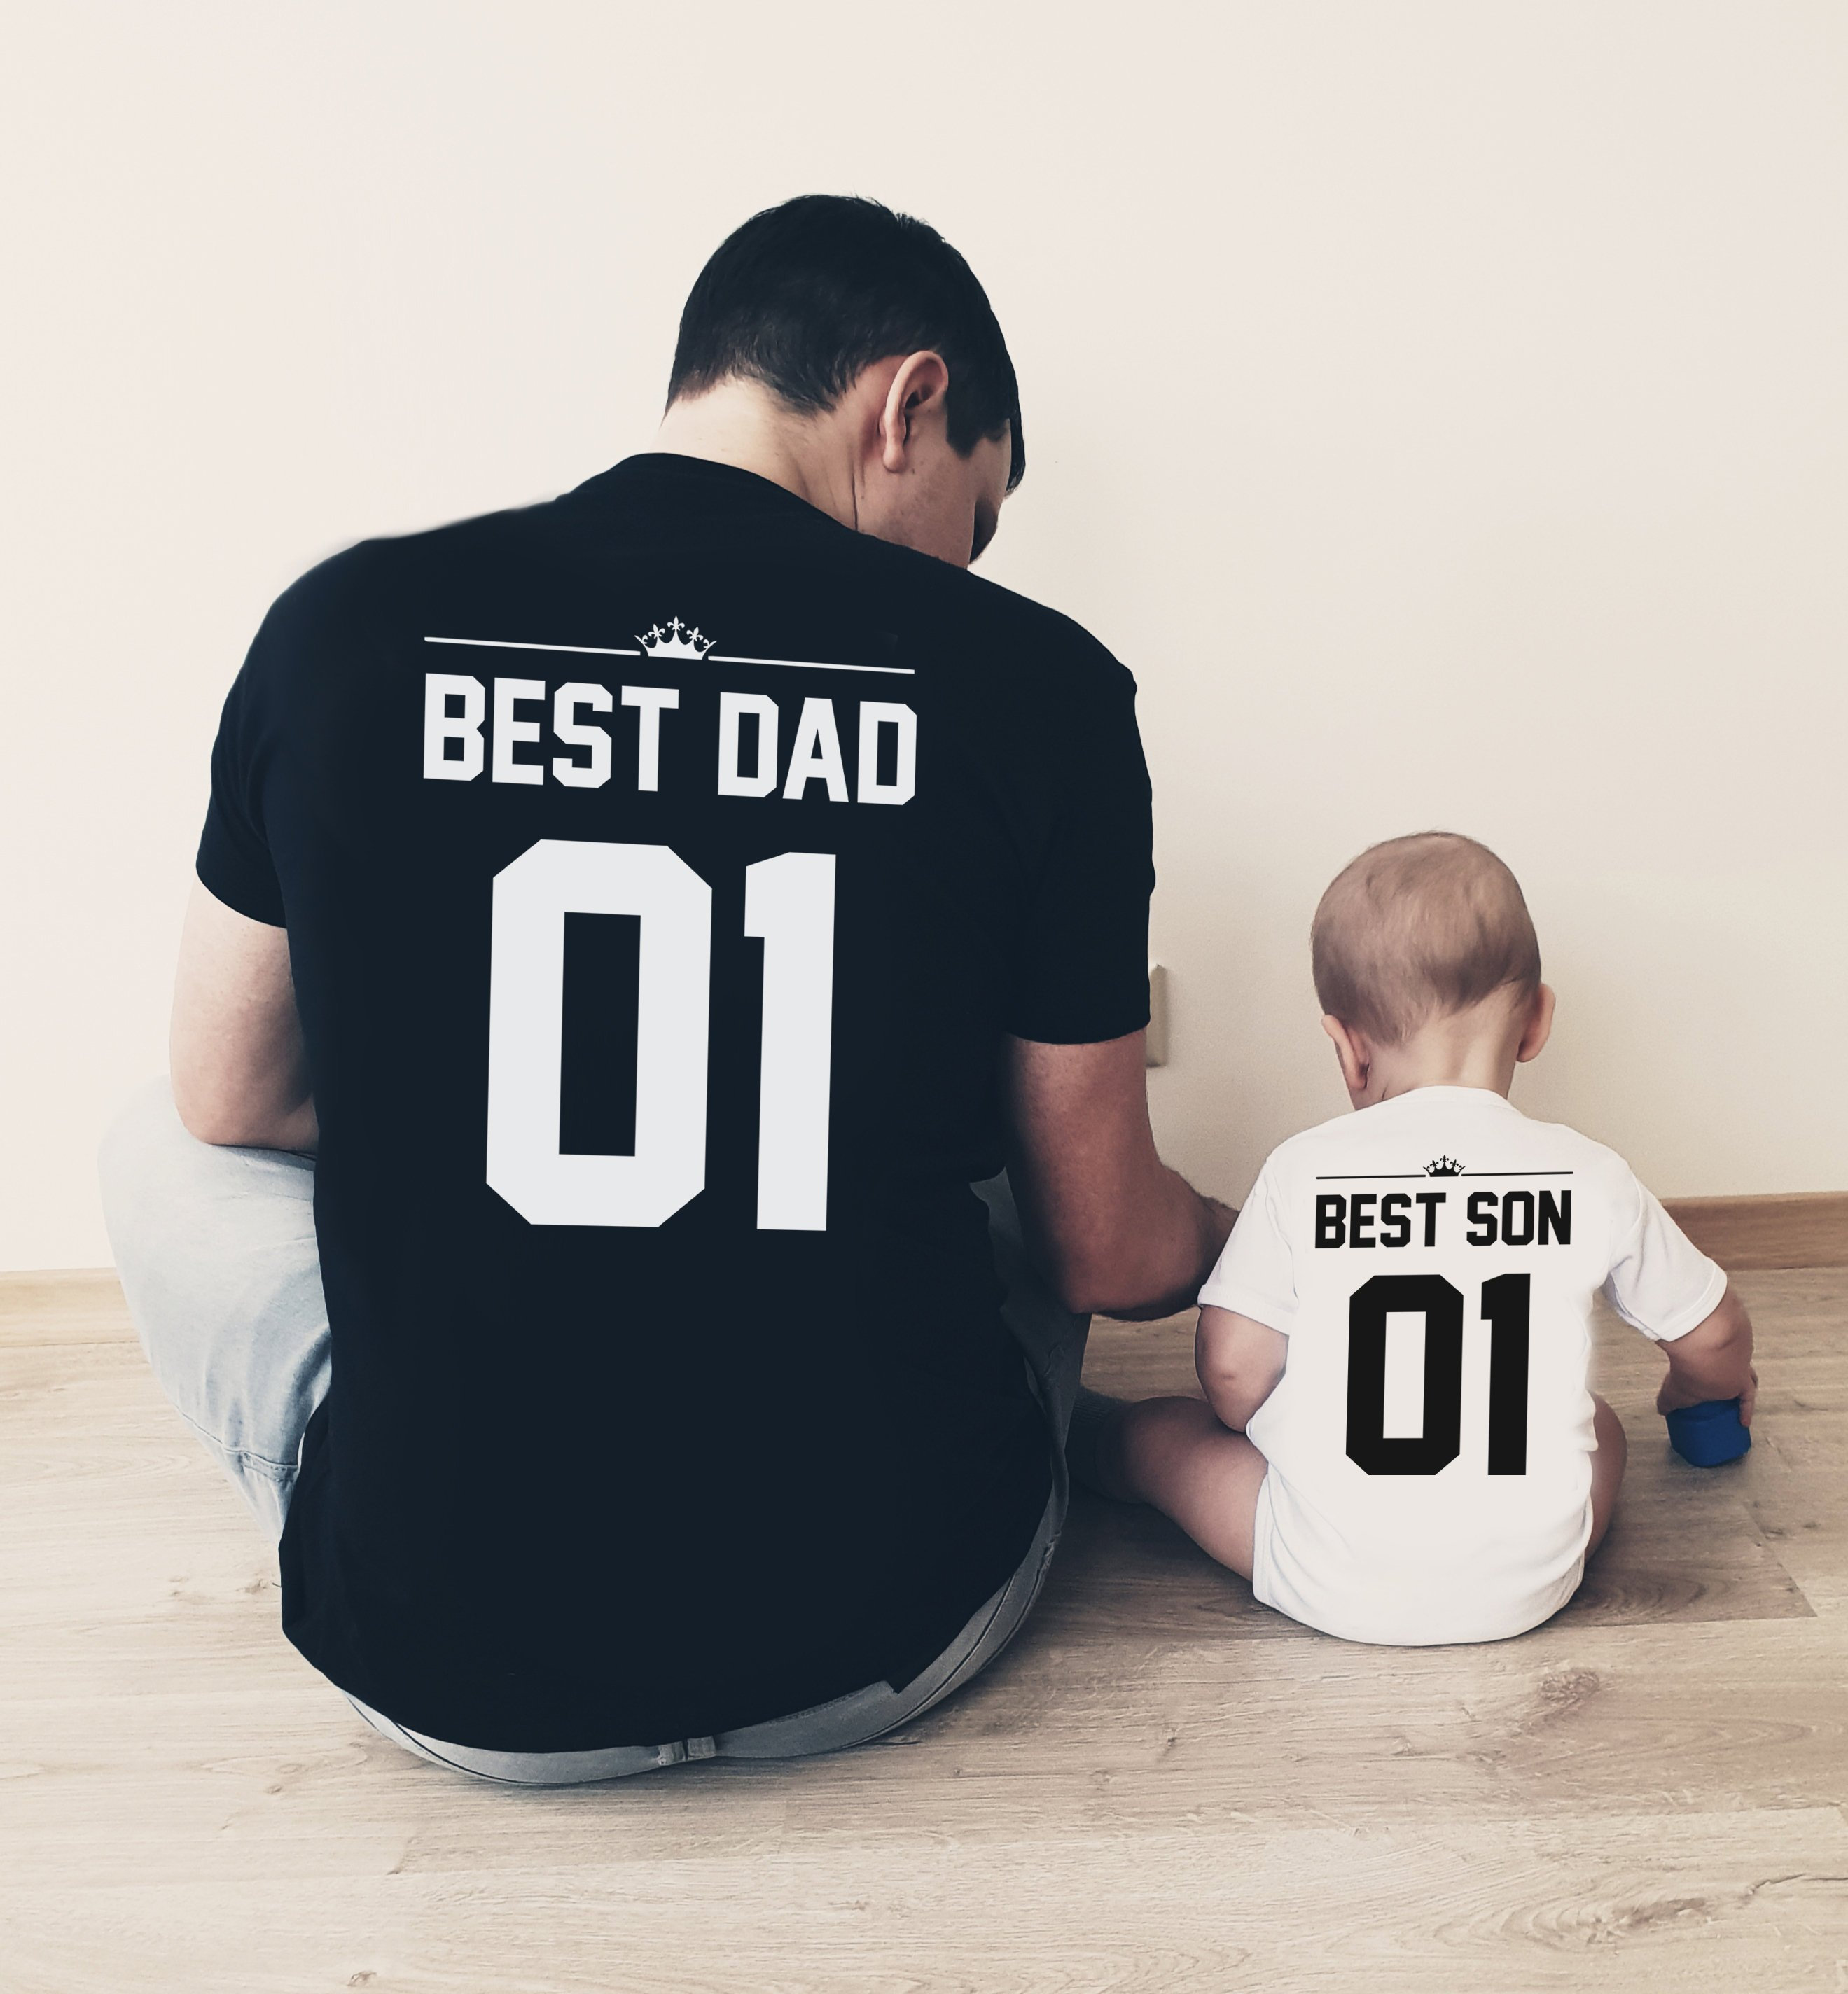 b83ed1440 Best Dad Best Son Shirts Dad and Son Matching T-Shirts | Etsy